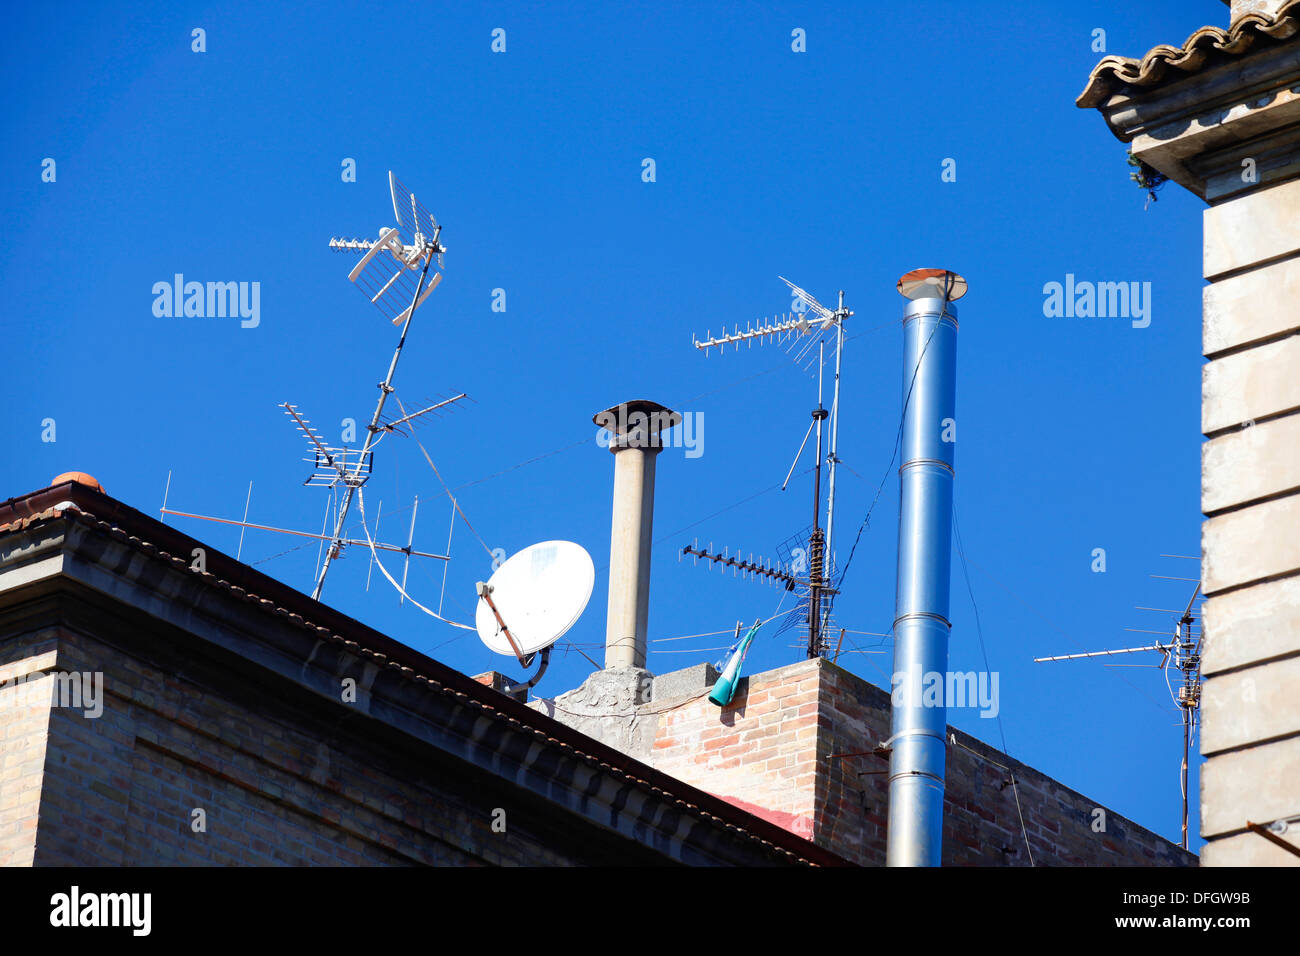 Television aerials on buildings in Vasto, Italy. - Stock Image